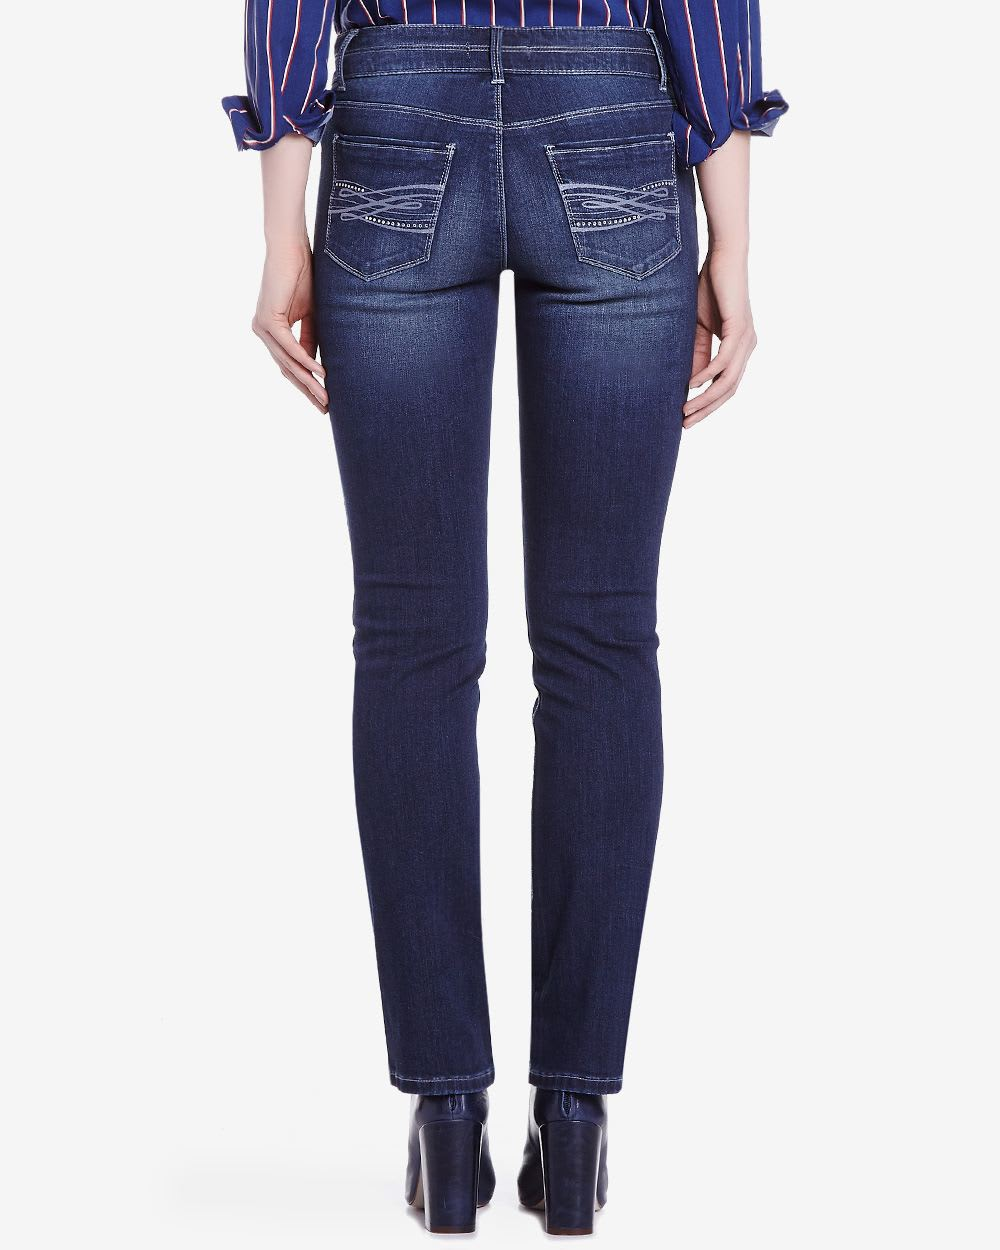 Straight A classic cut for a slim, streamlined look. Bootcut Universally flattering, balances proportions, and elongates shape. Flare Vintage-inspired silhouette with a modern, statement-making spirit. Boyfriend Slightly slouchy with fashion-forward ease.